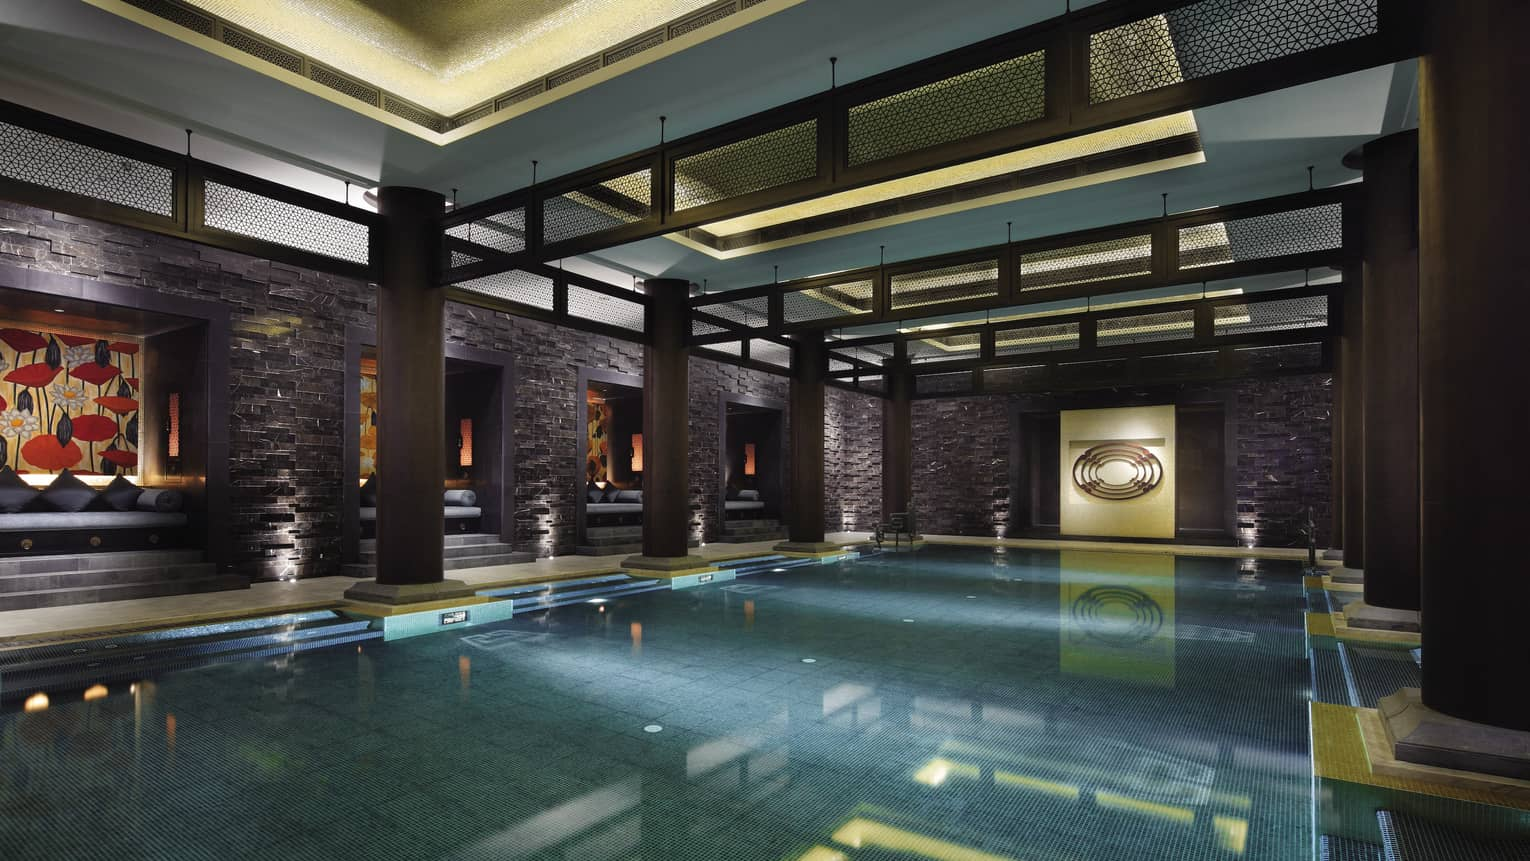 Indoor swimming pool under black brick beams, walls, Chinese art